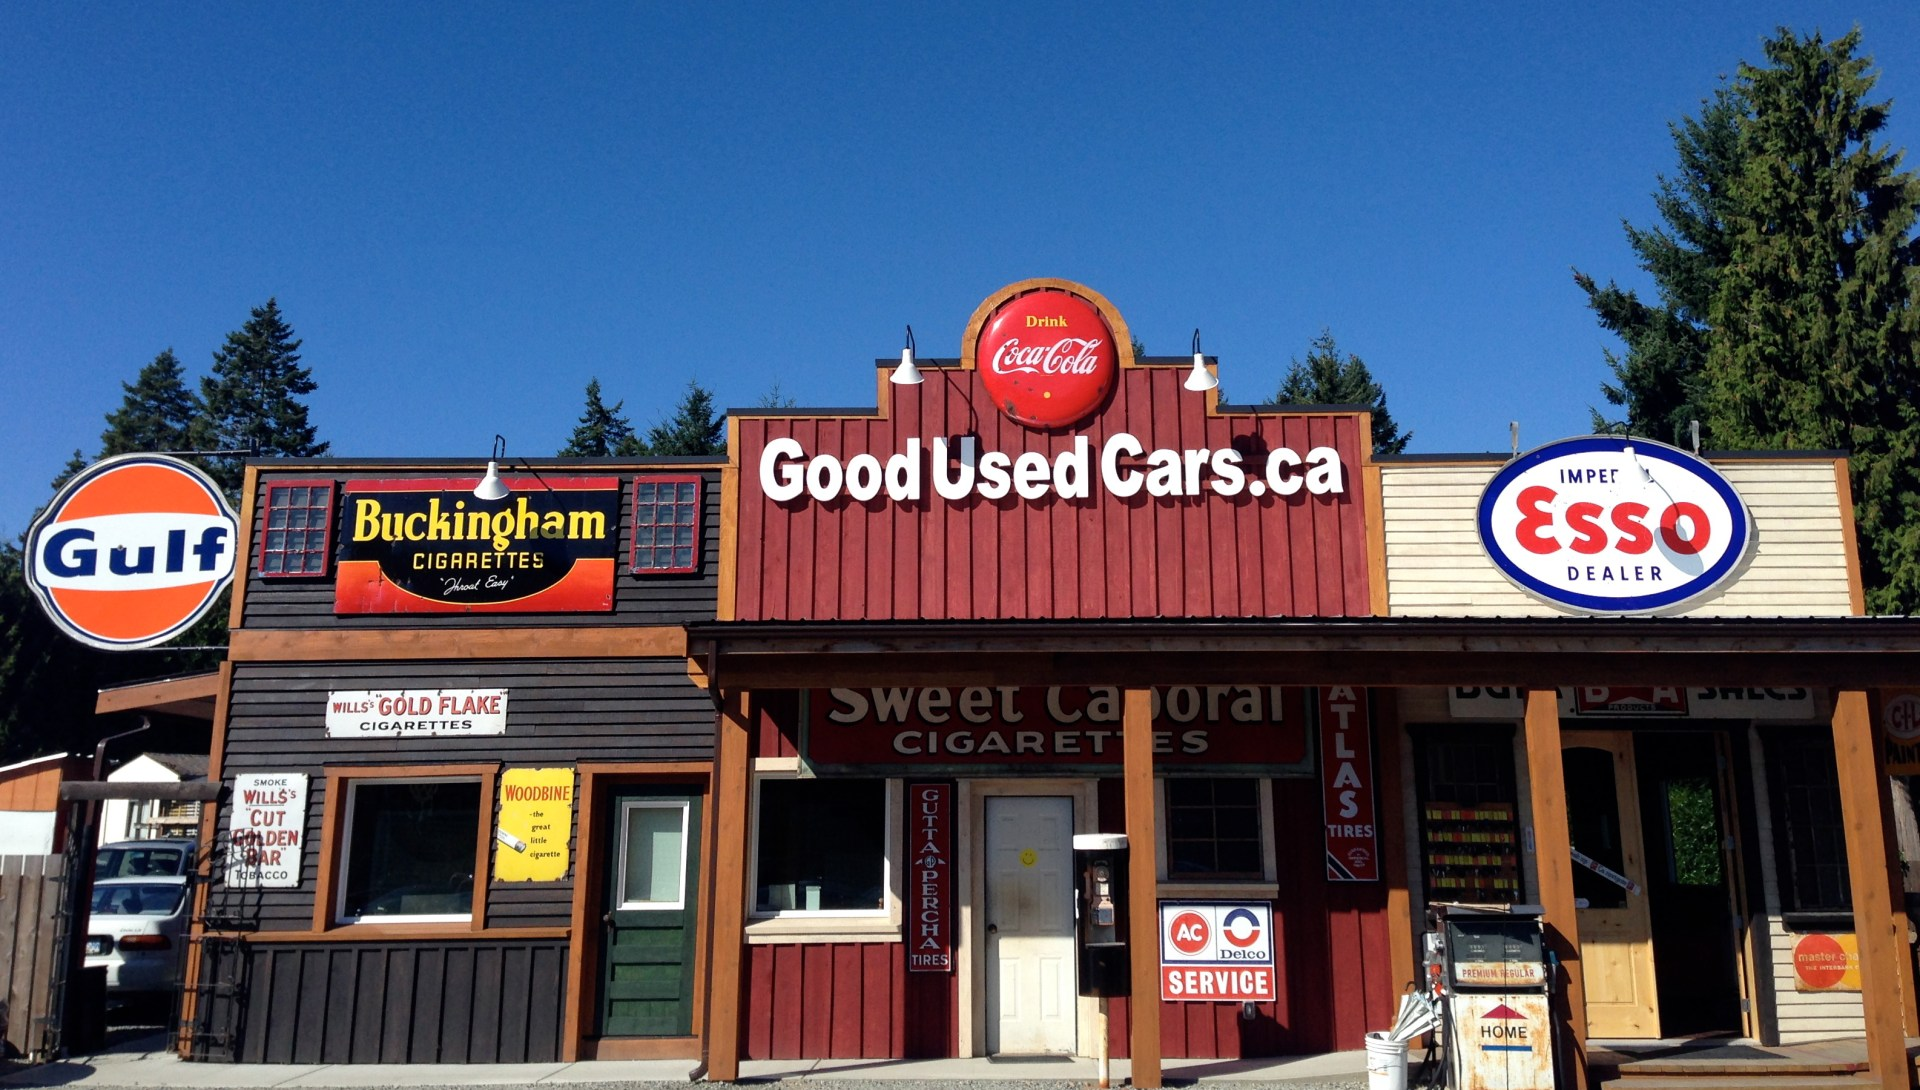 Good Used Cars